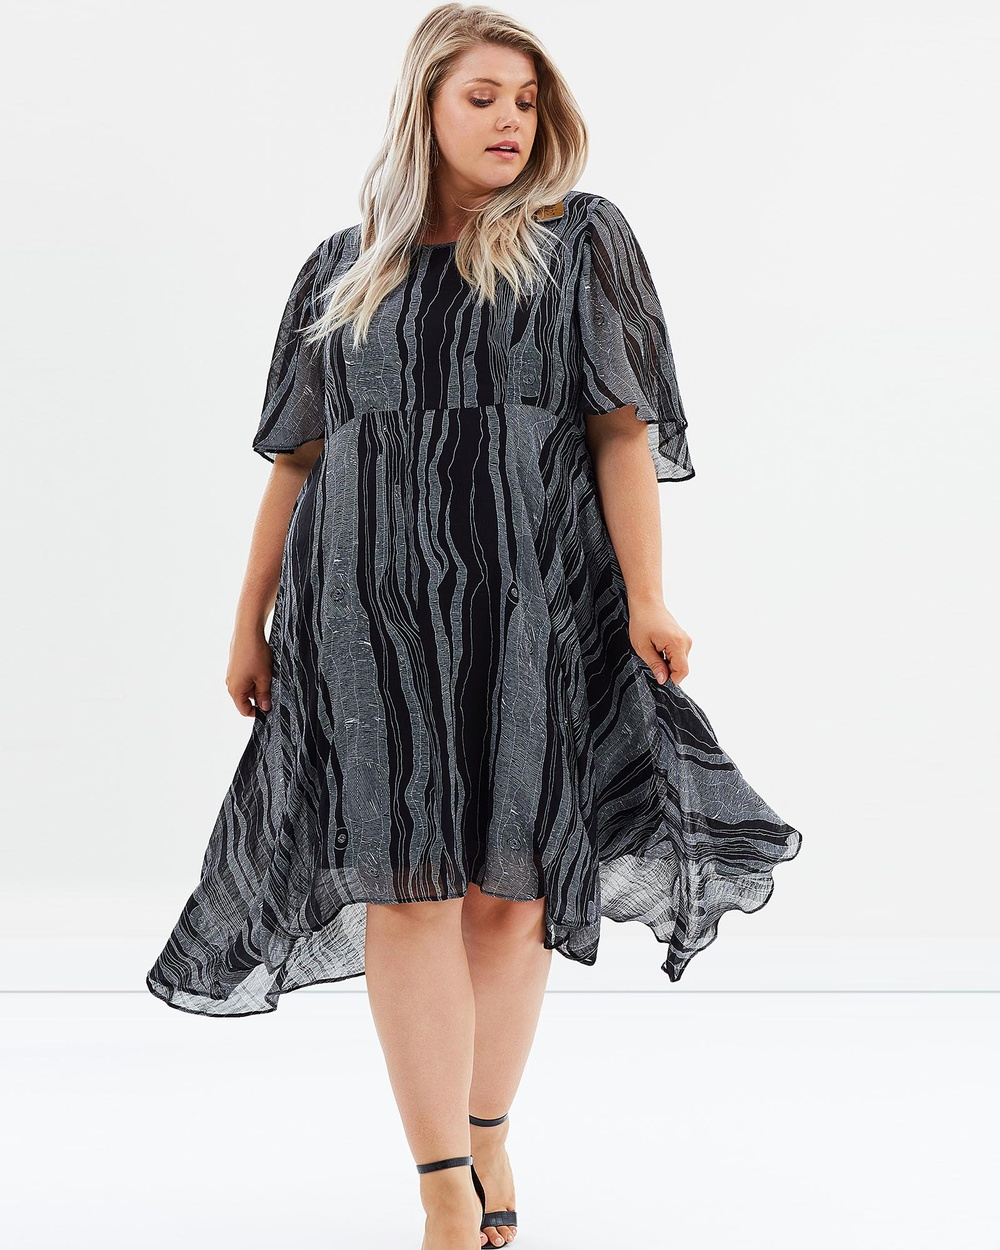 Advocado Plus Wild and Wonder Cape Dress Dresses Contours Wild and Wonder Cape Dress